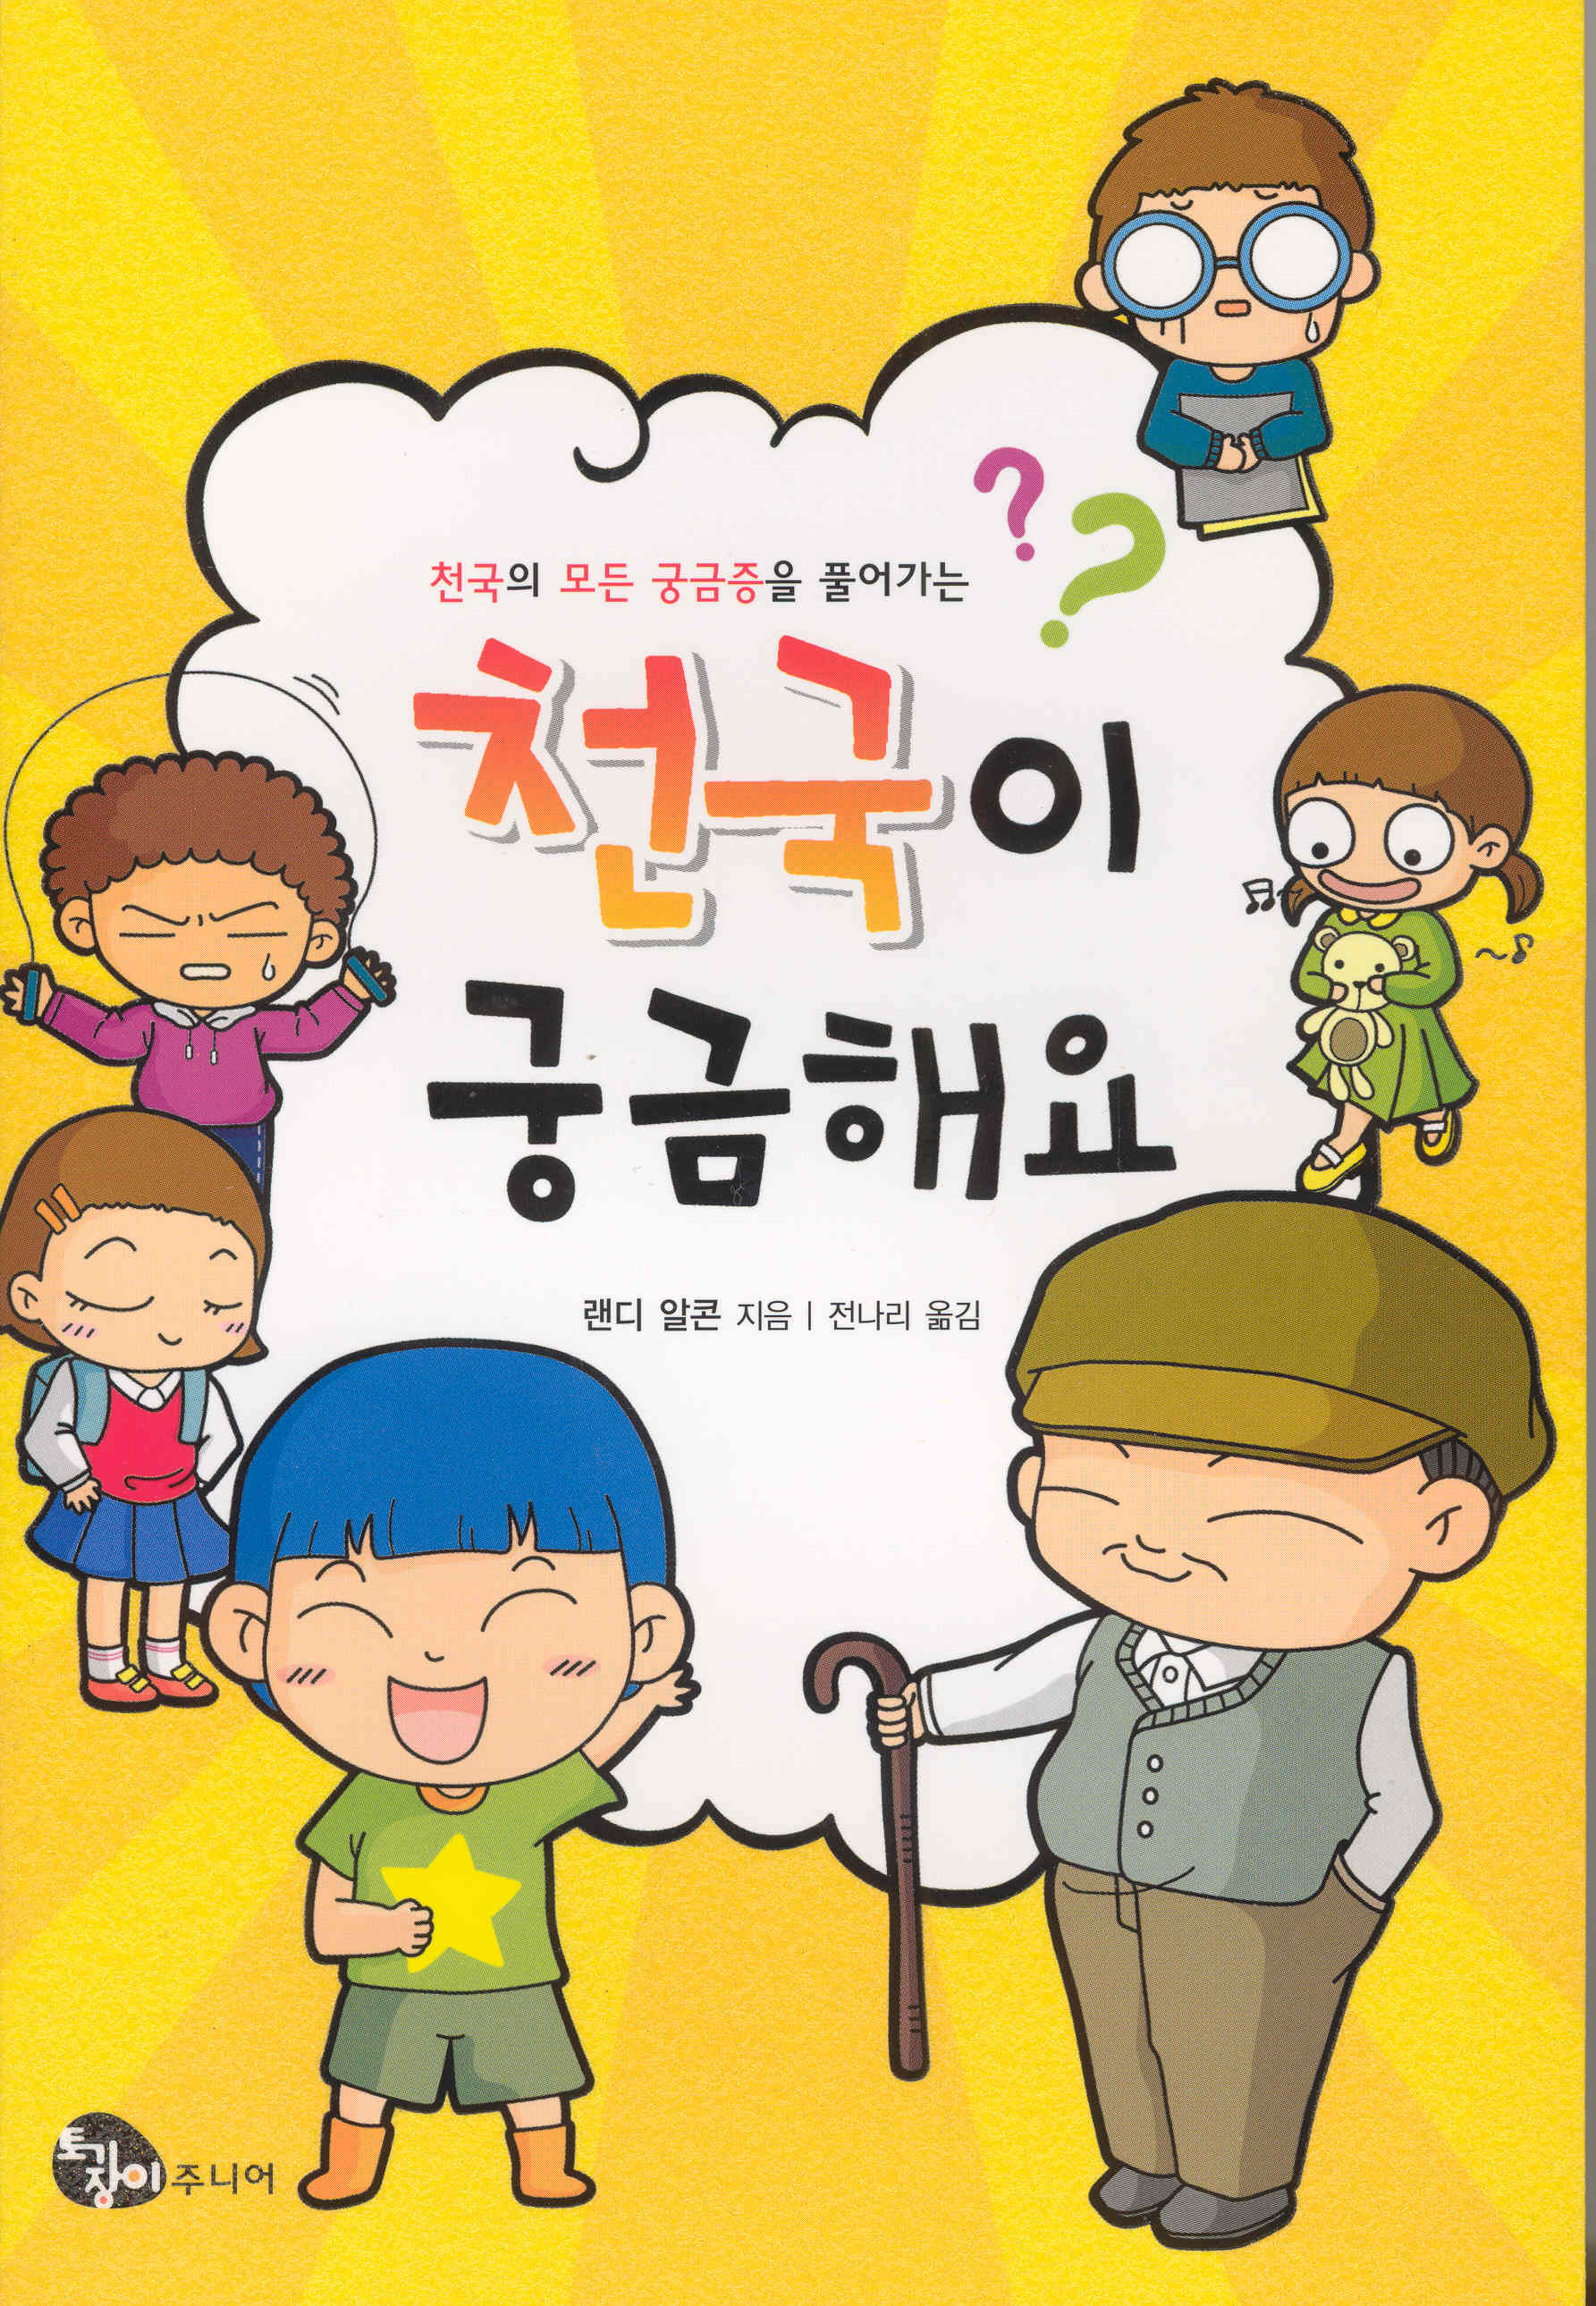 heaven-for-kids-korean.jpg